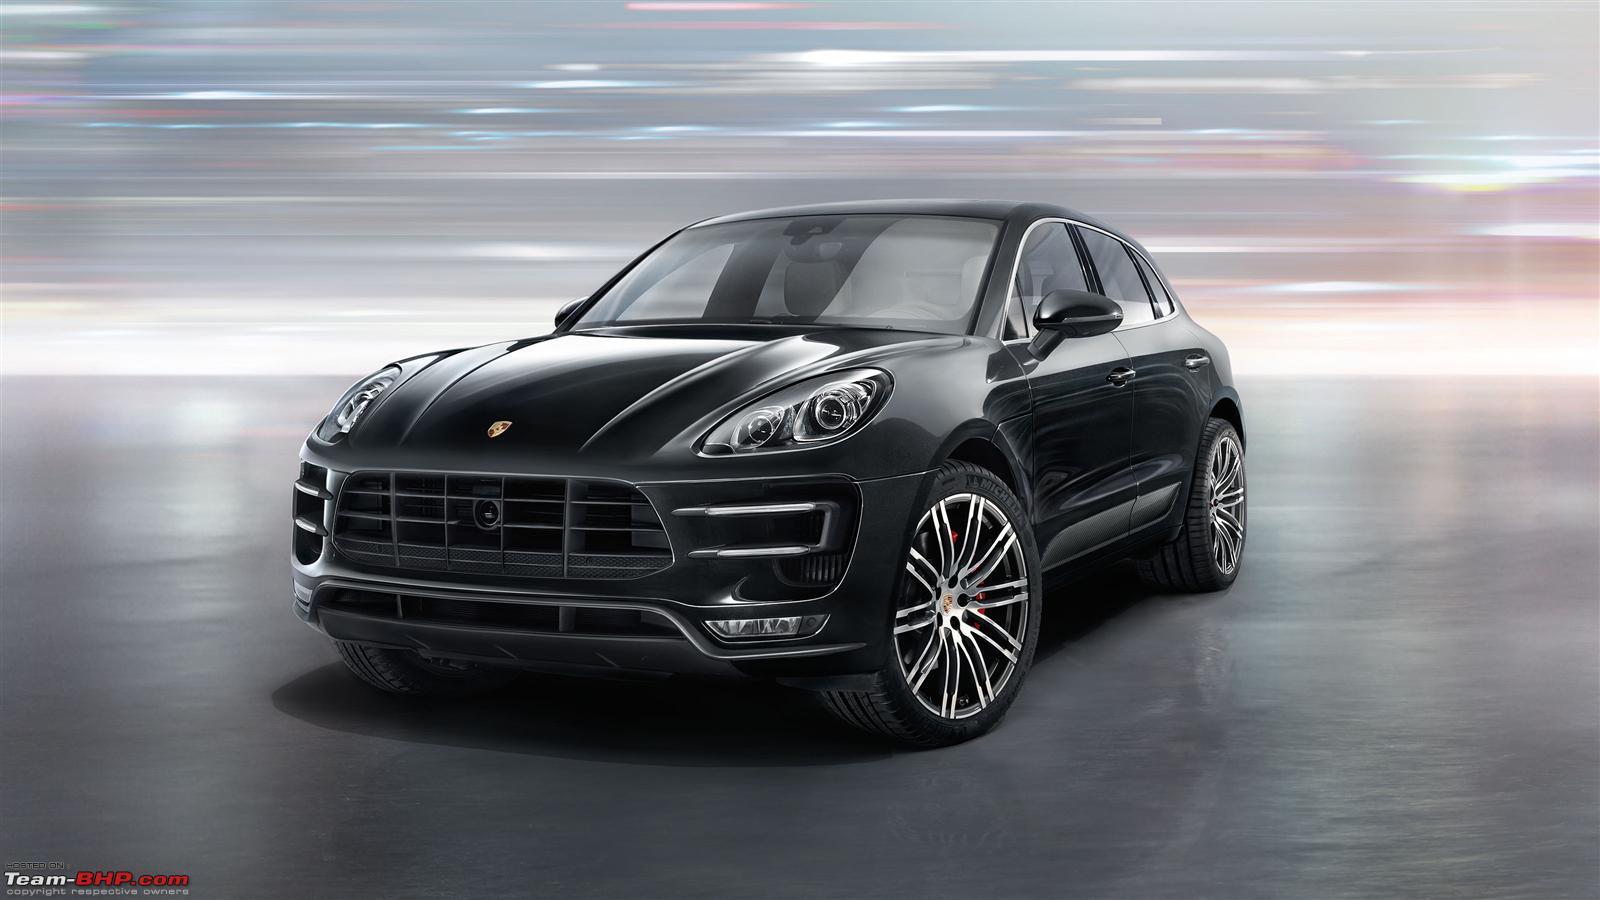 Porsche Macan Suv Launched In India Rs 1 Crore Team Bhp